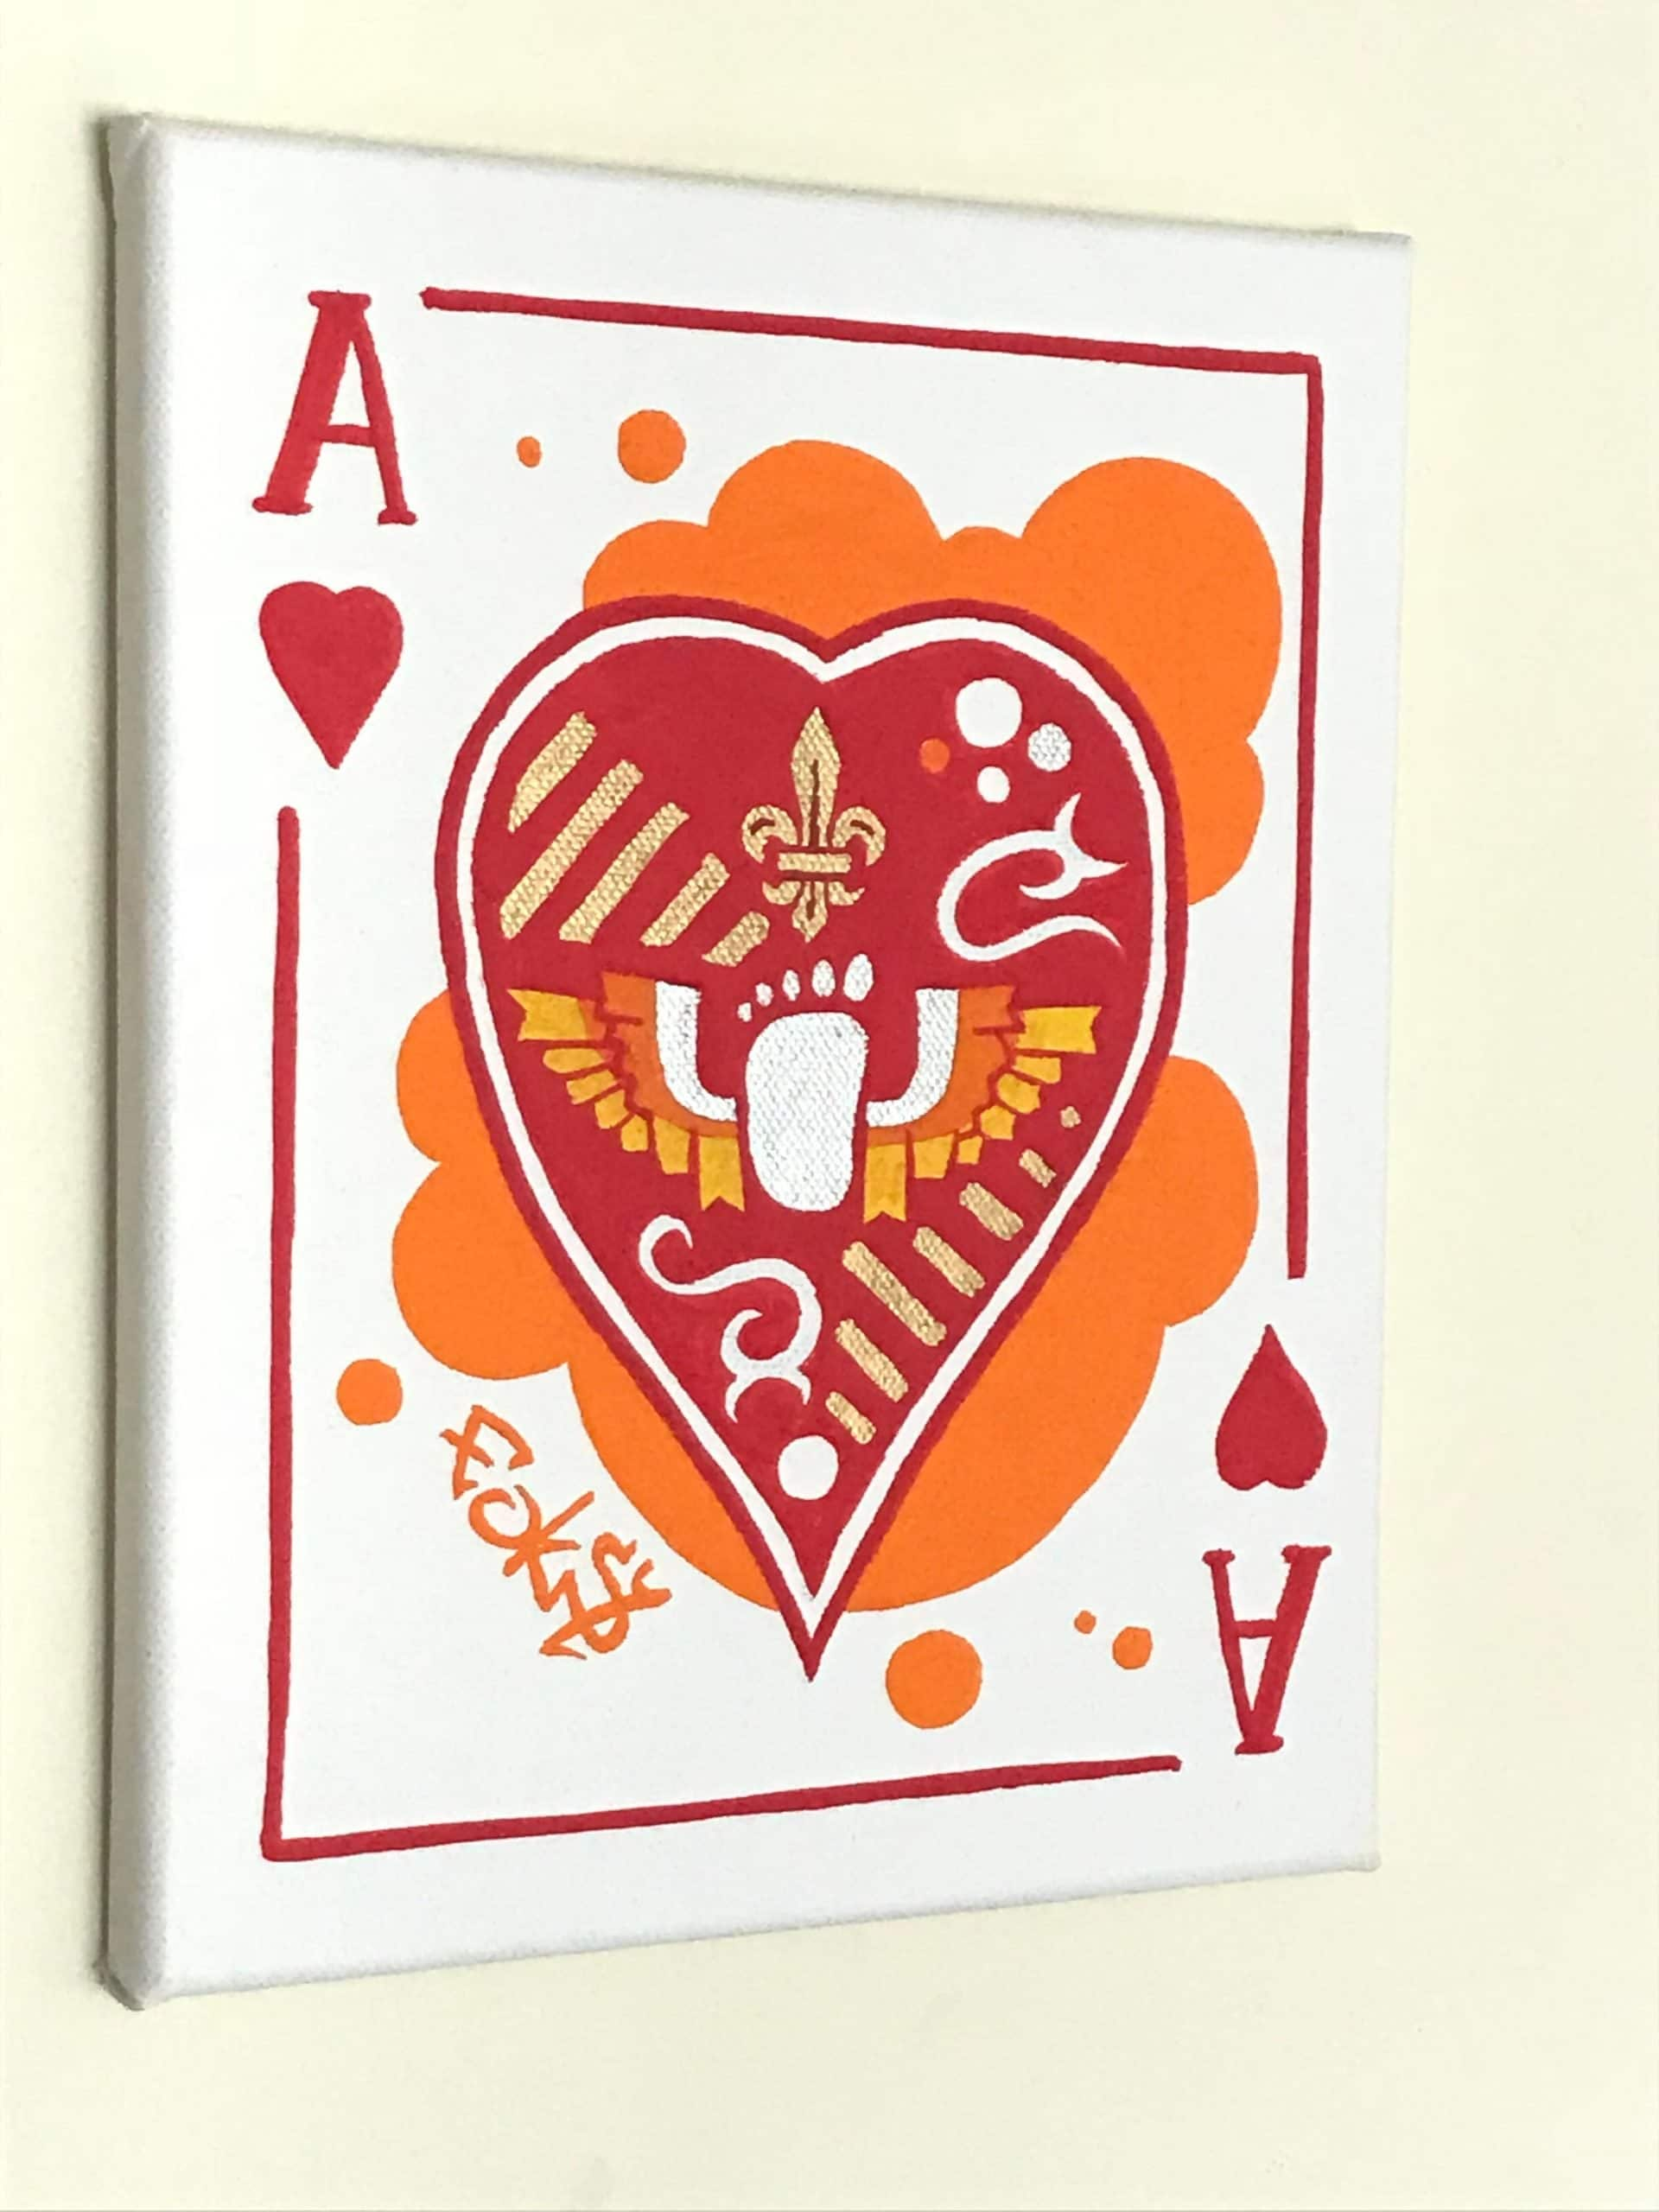 mini canvas made with posca markers of an ace of hearts